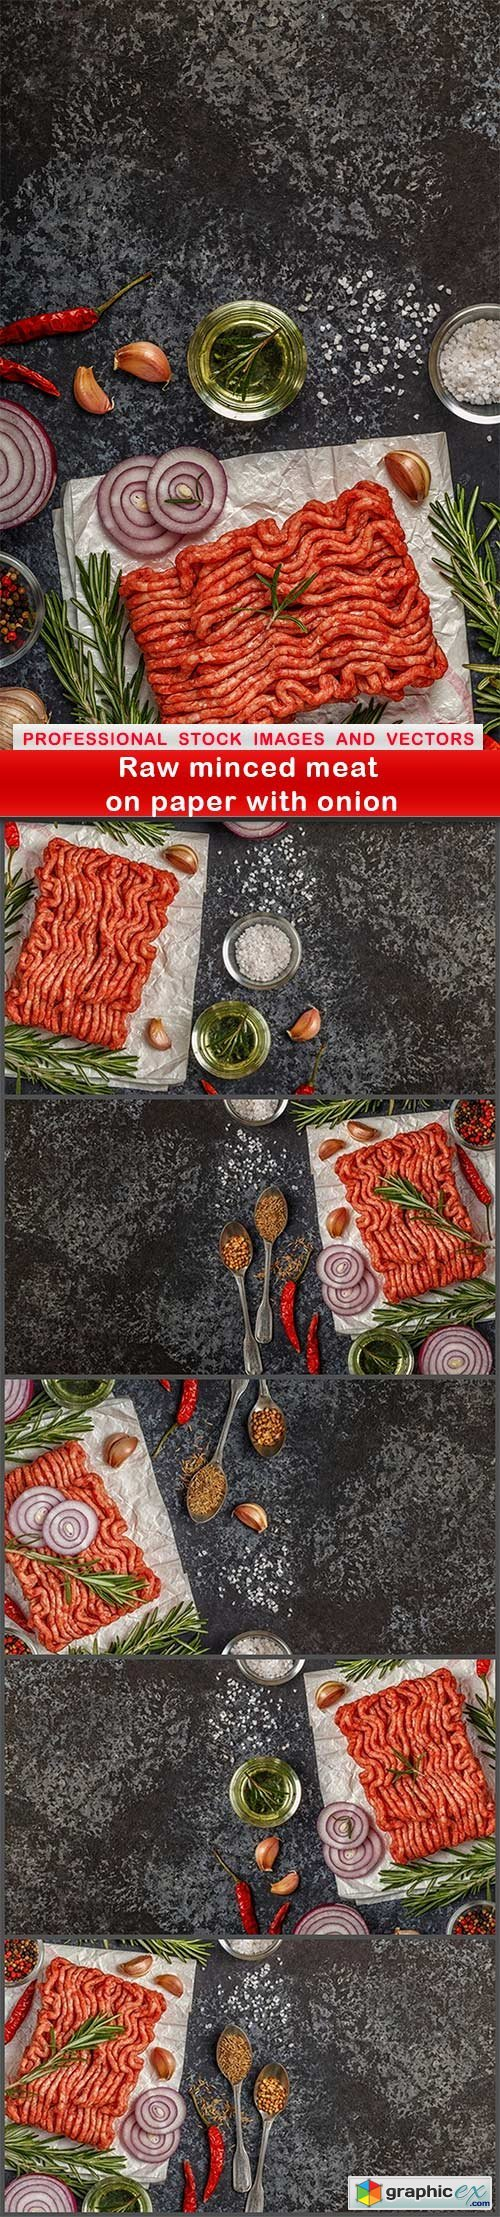 Raw minced meat on paper with onion - 6 UHQ JPEG